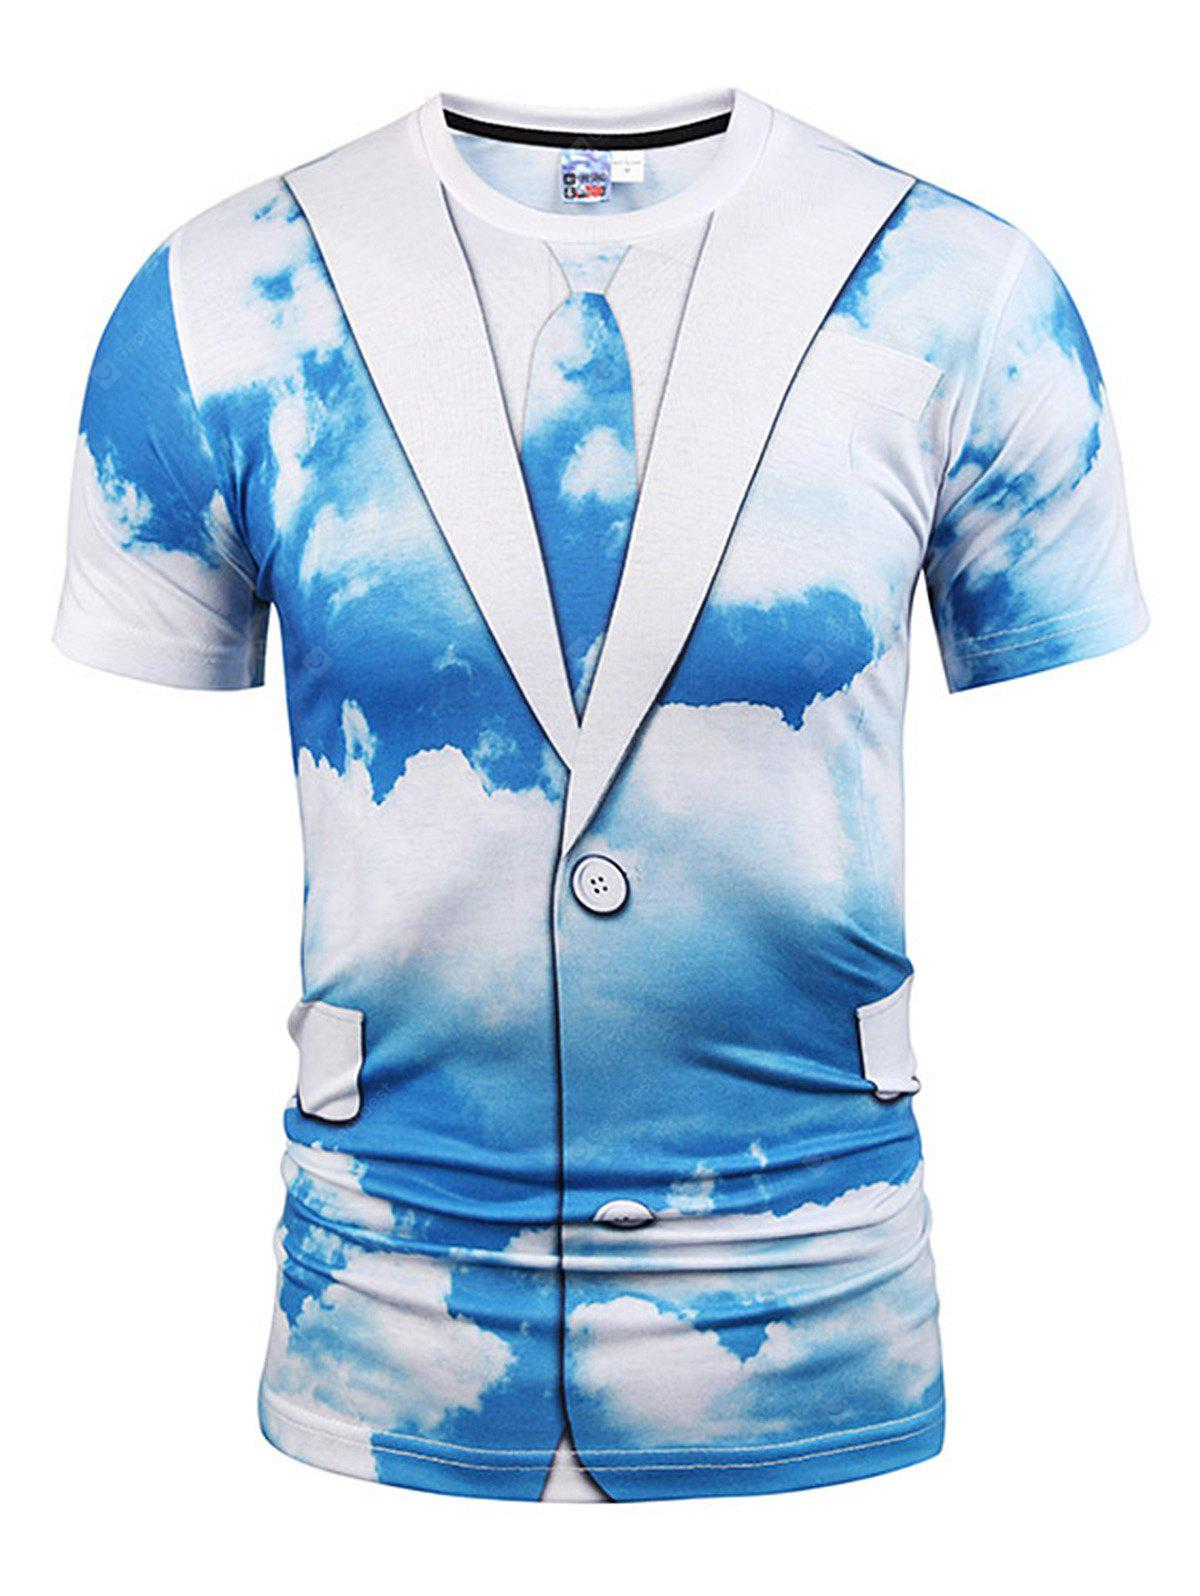 Men Comfortable Sky Printed Casual T-shirt